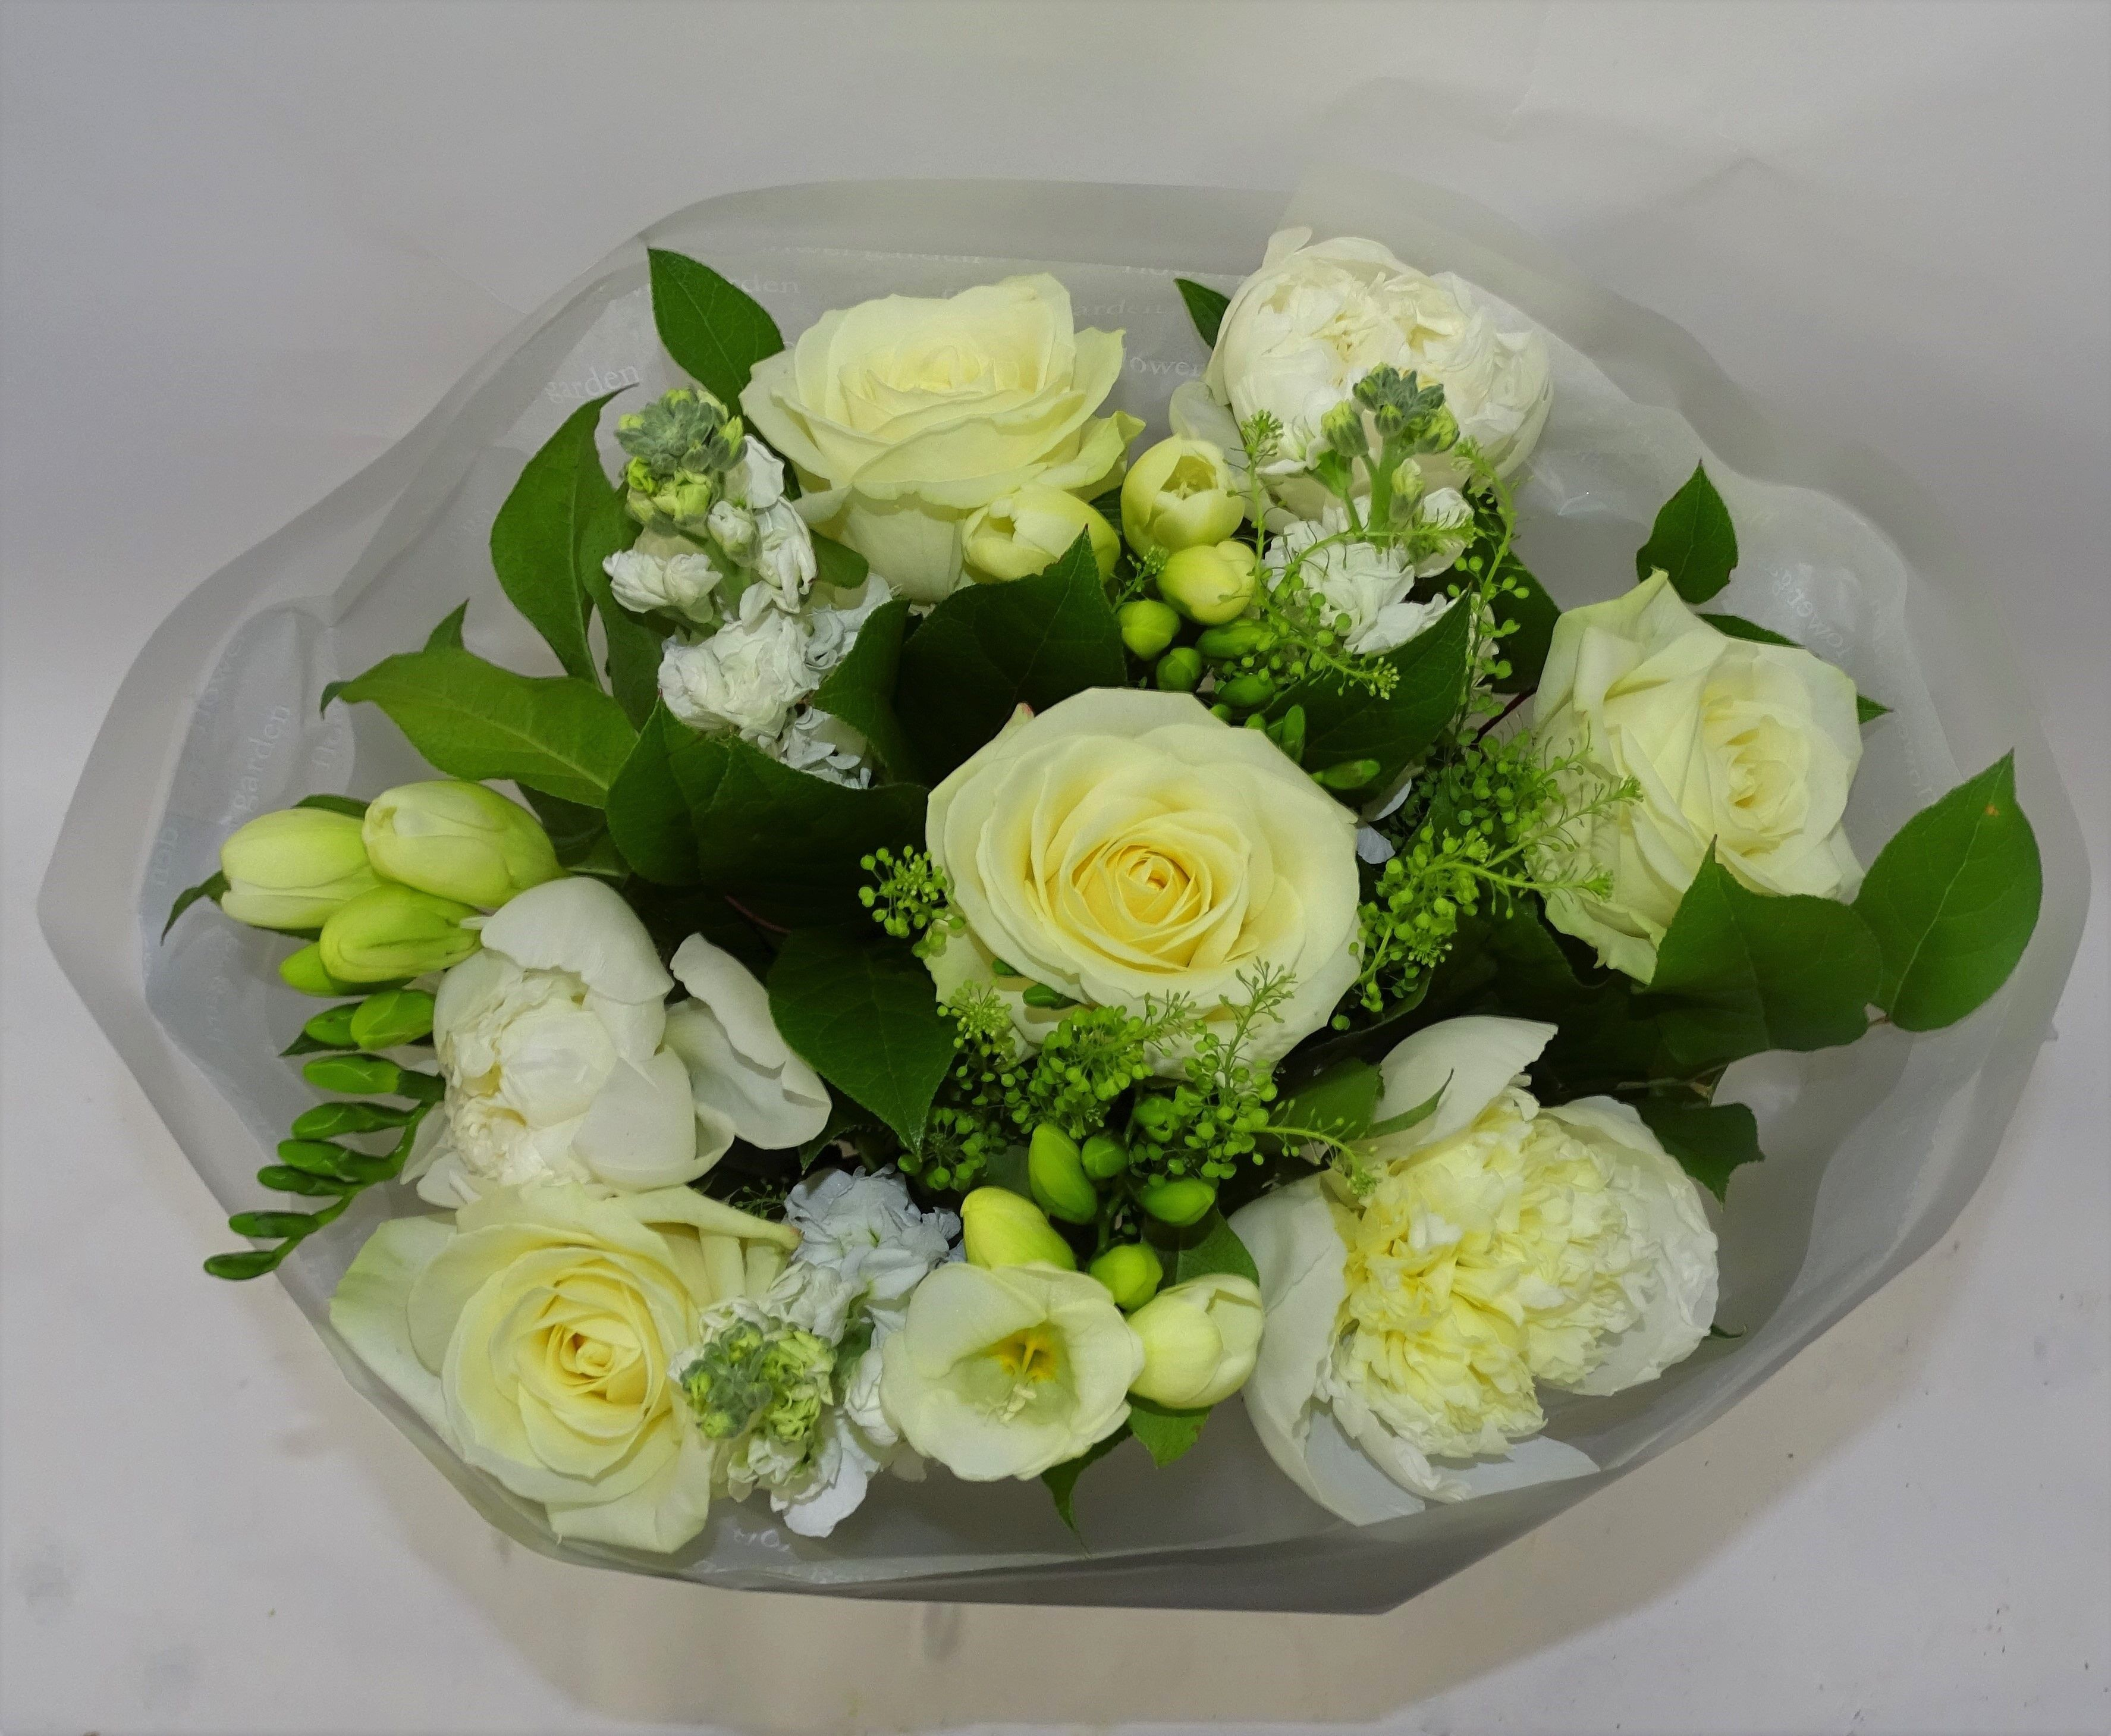 Waitrose Launches Royal Wedding Flower Bouquet Prince Harry And